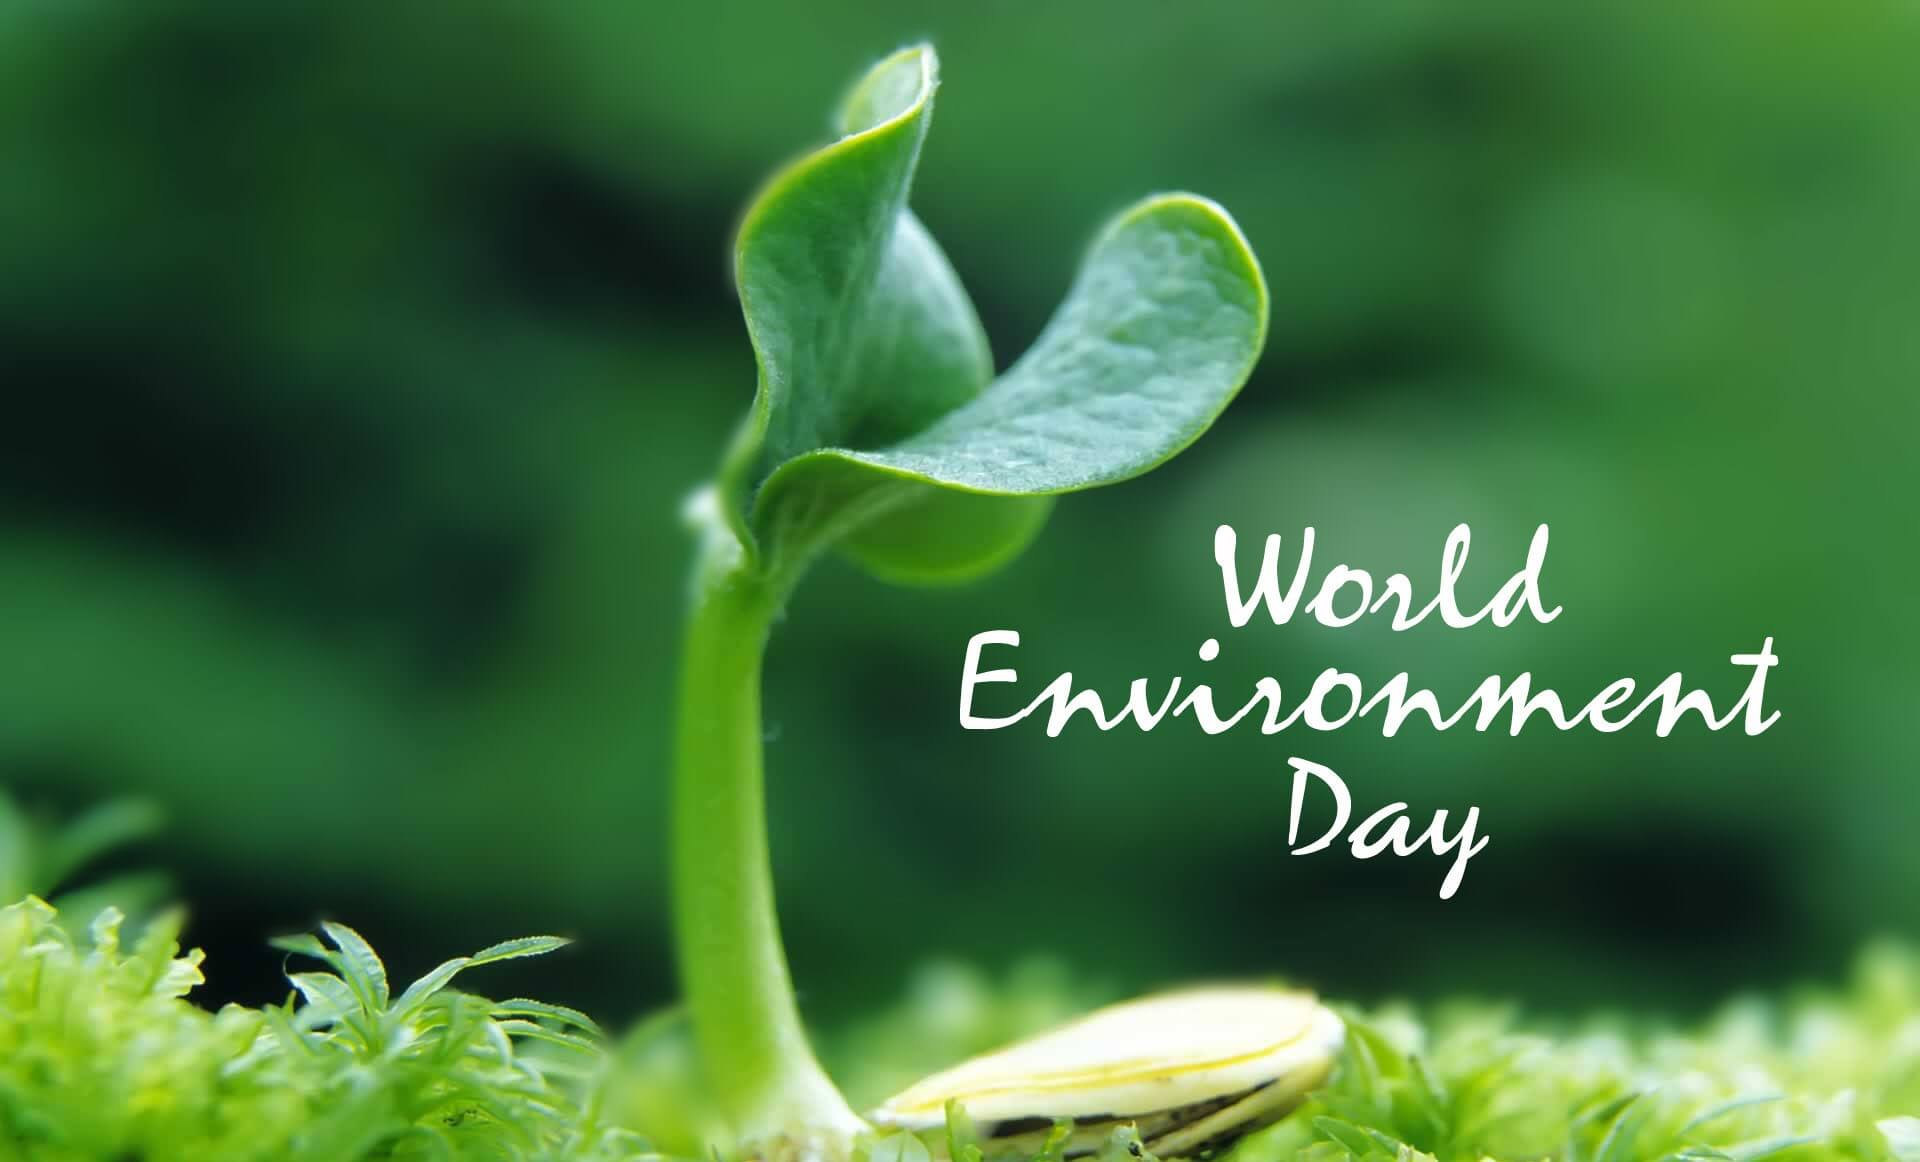 world environment day wallpaper